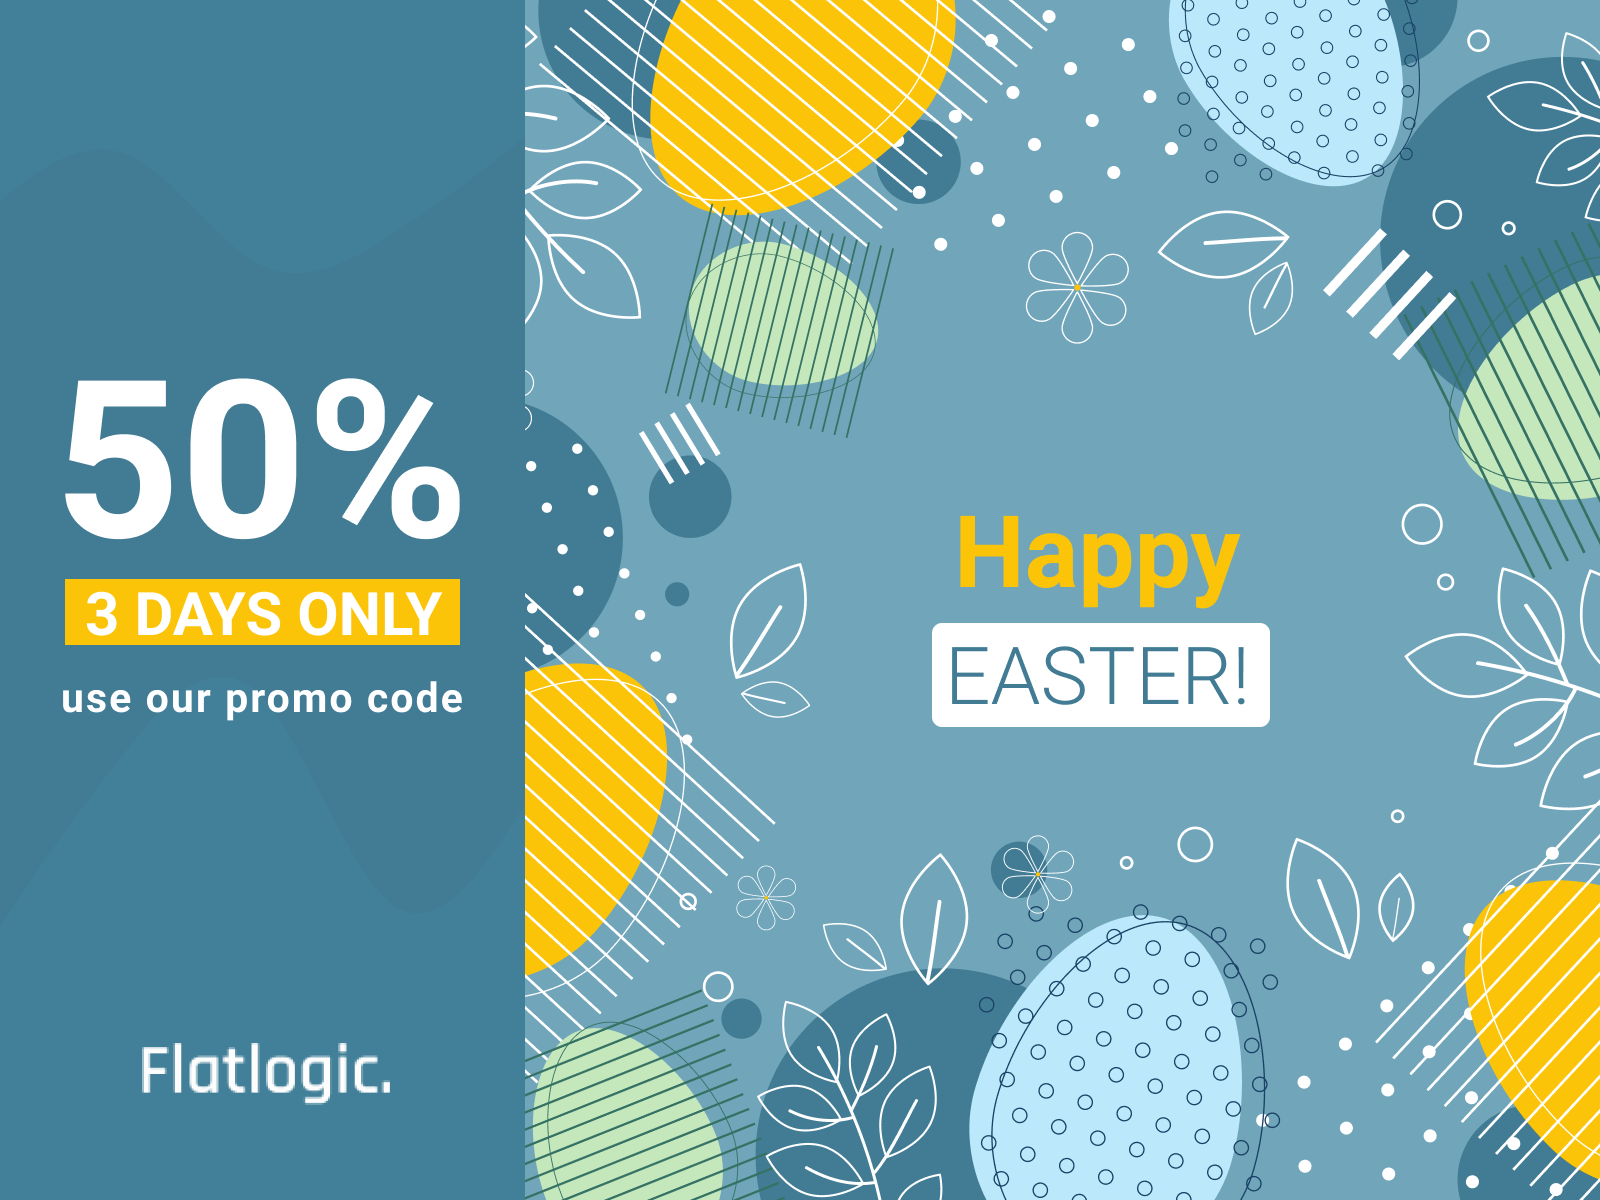 HappyEaster! Flatlogic Gives 50% Discount On All Templates